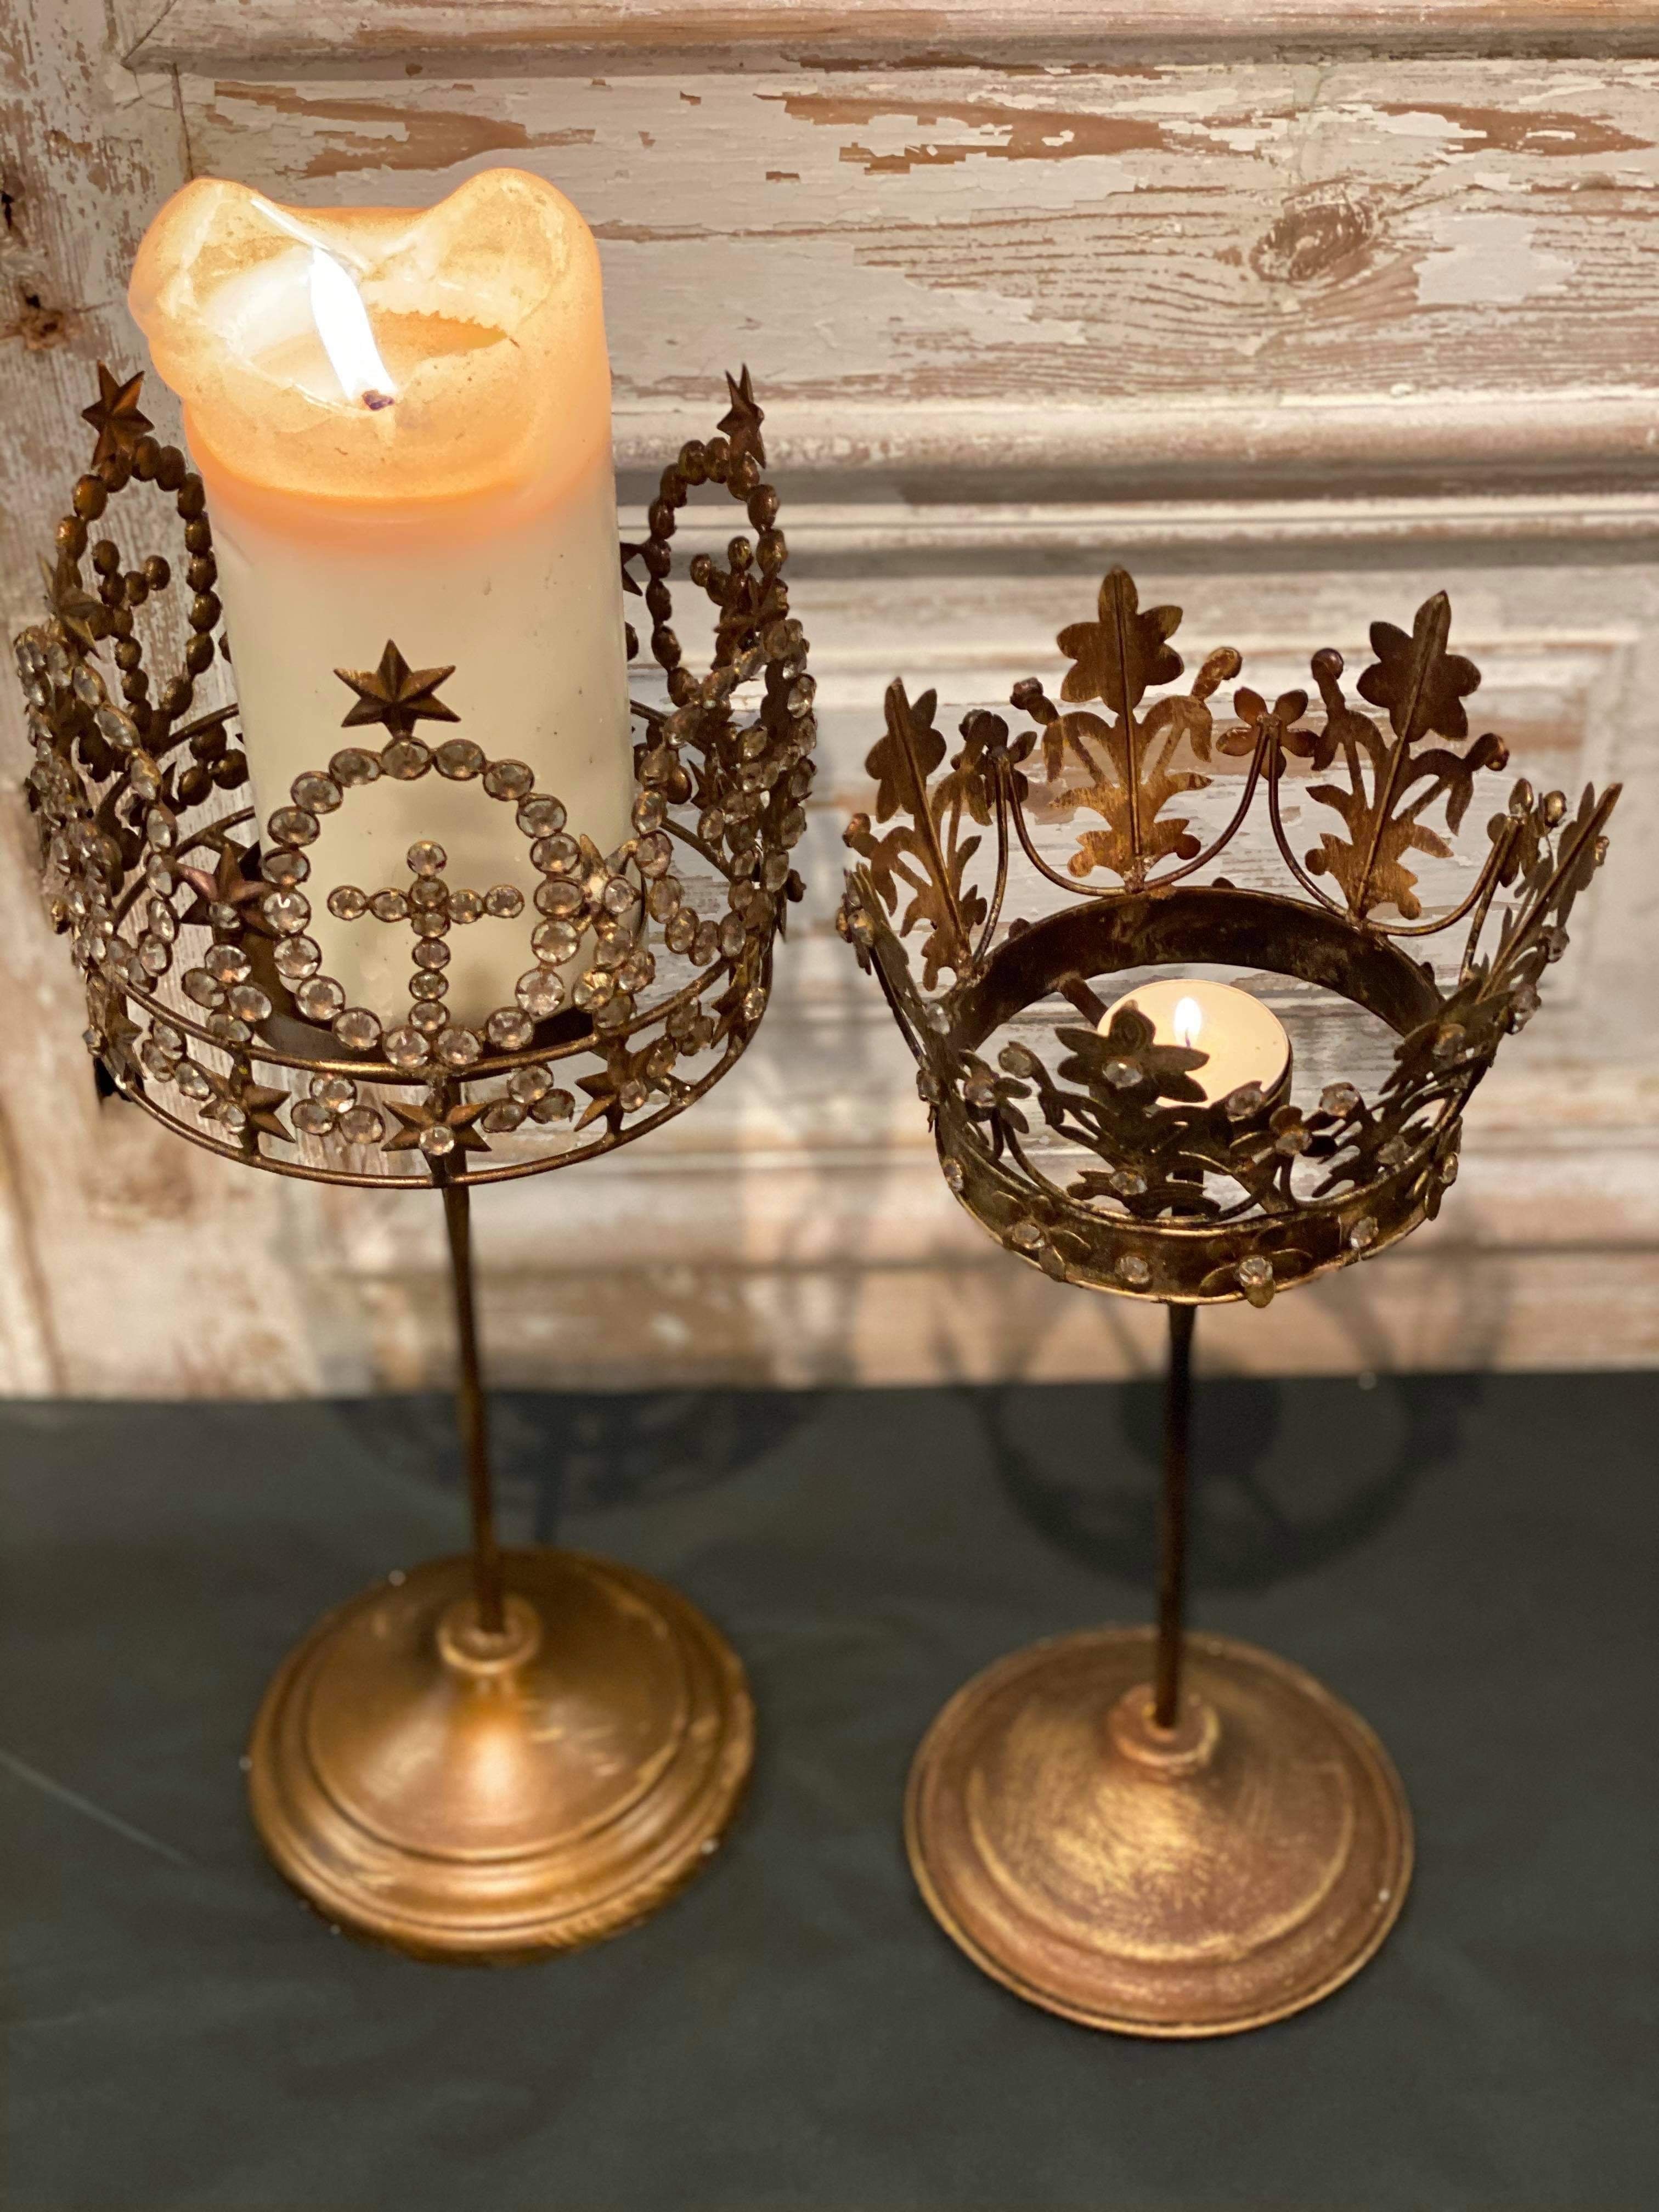 Victorian Crown Candle Holder - 2 Styles